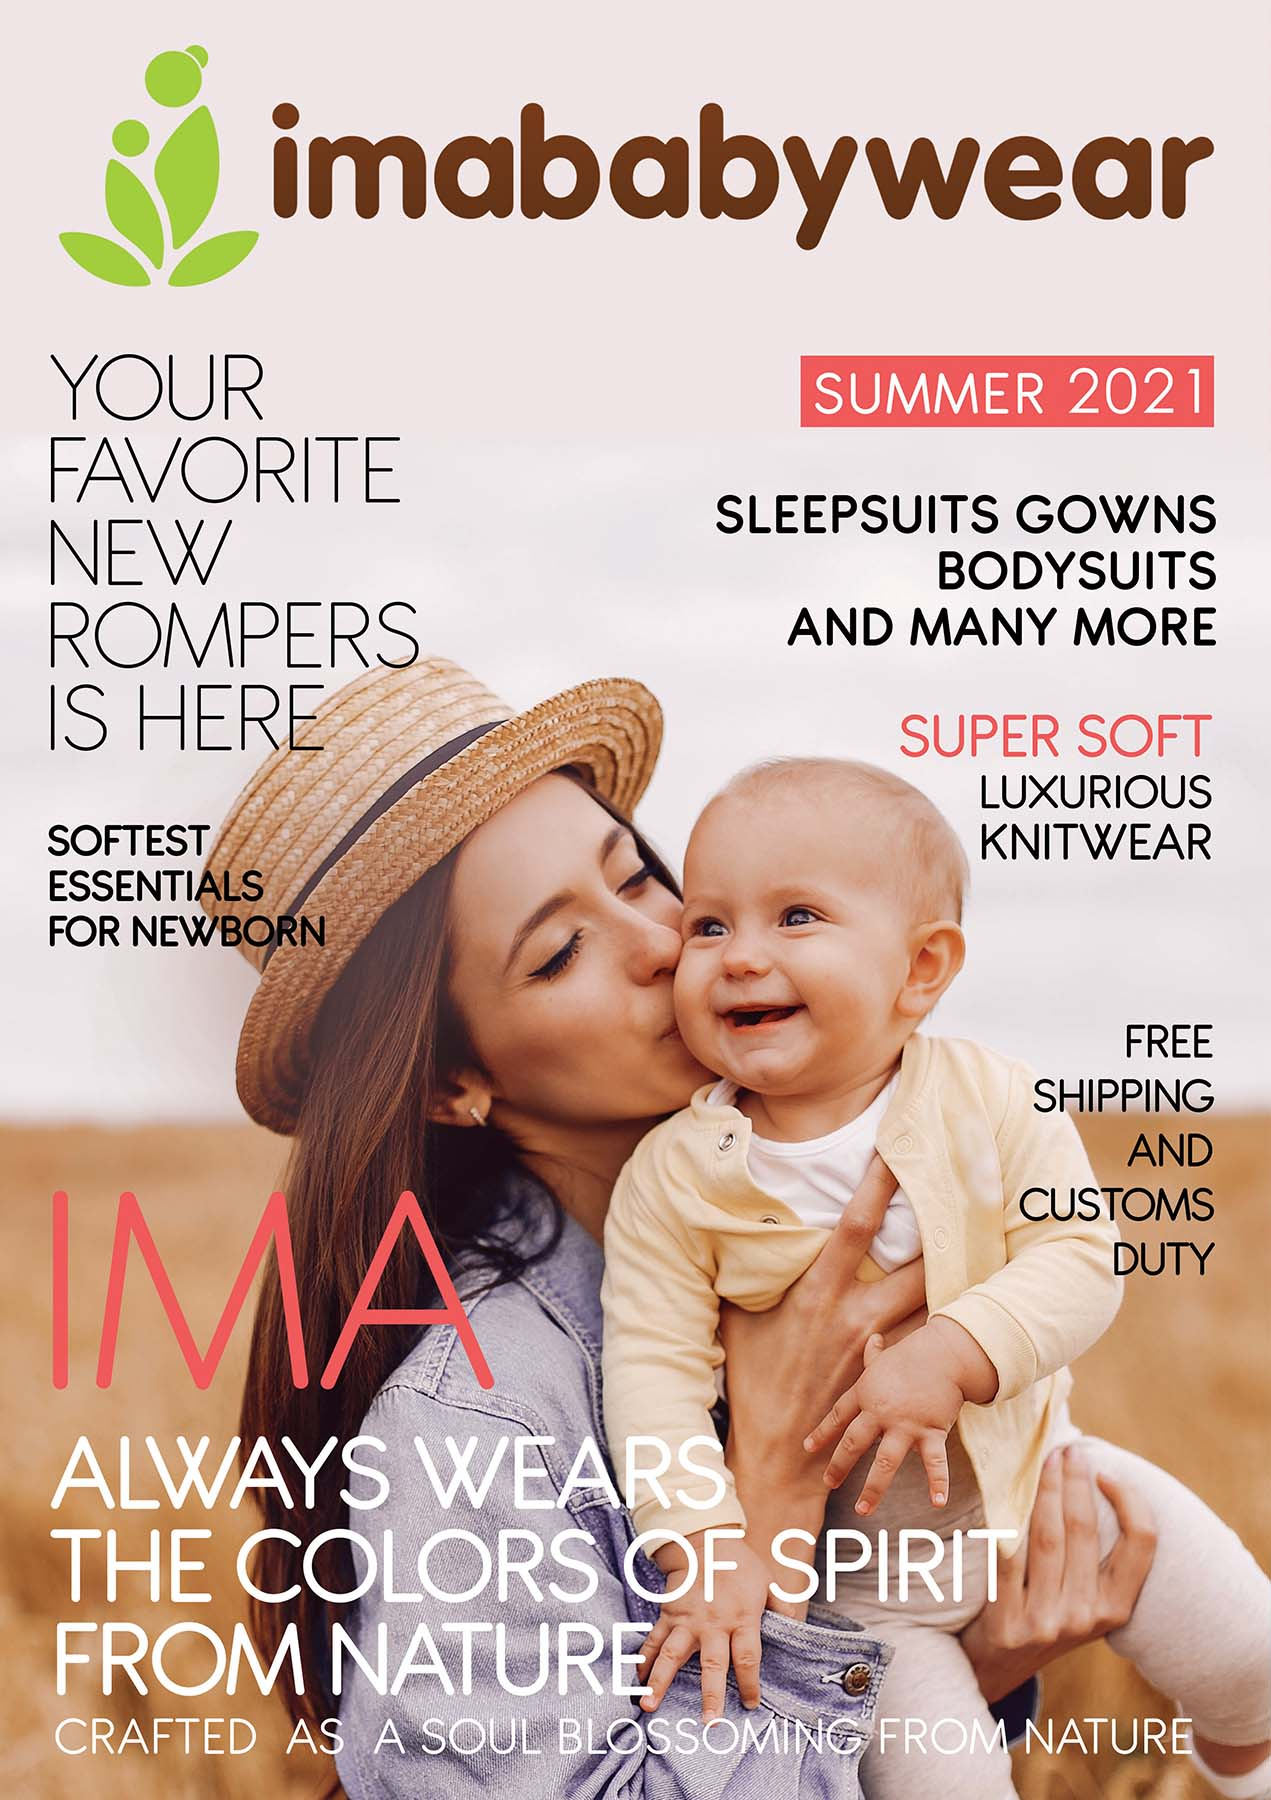 summer-2021 front page-imababywear